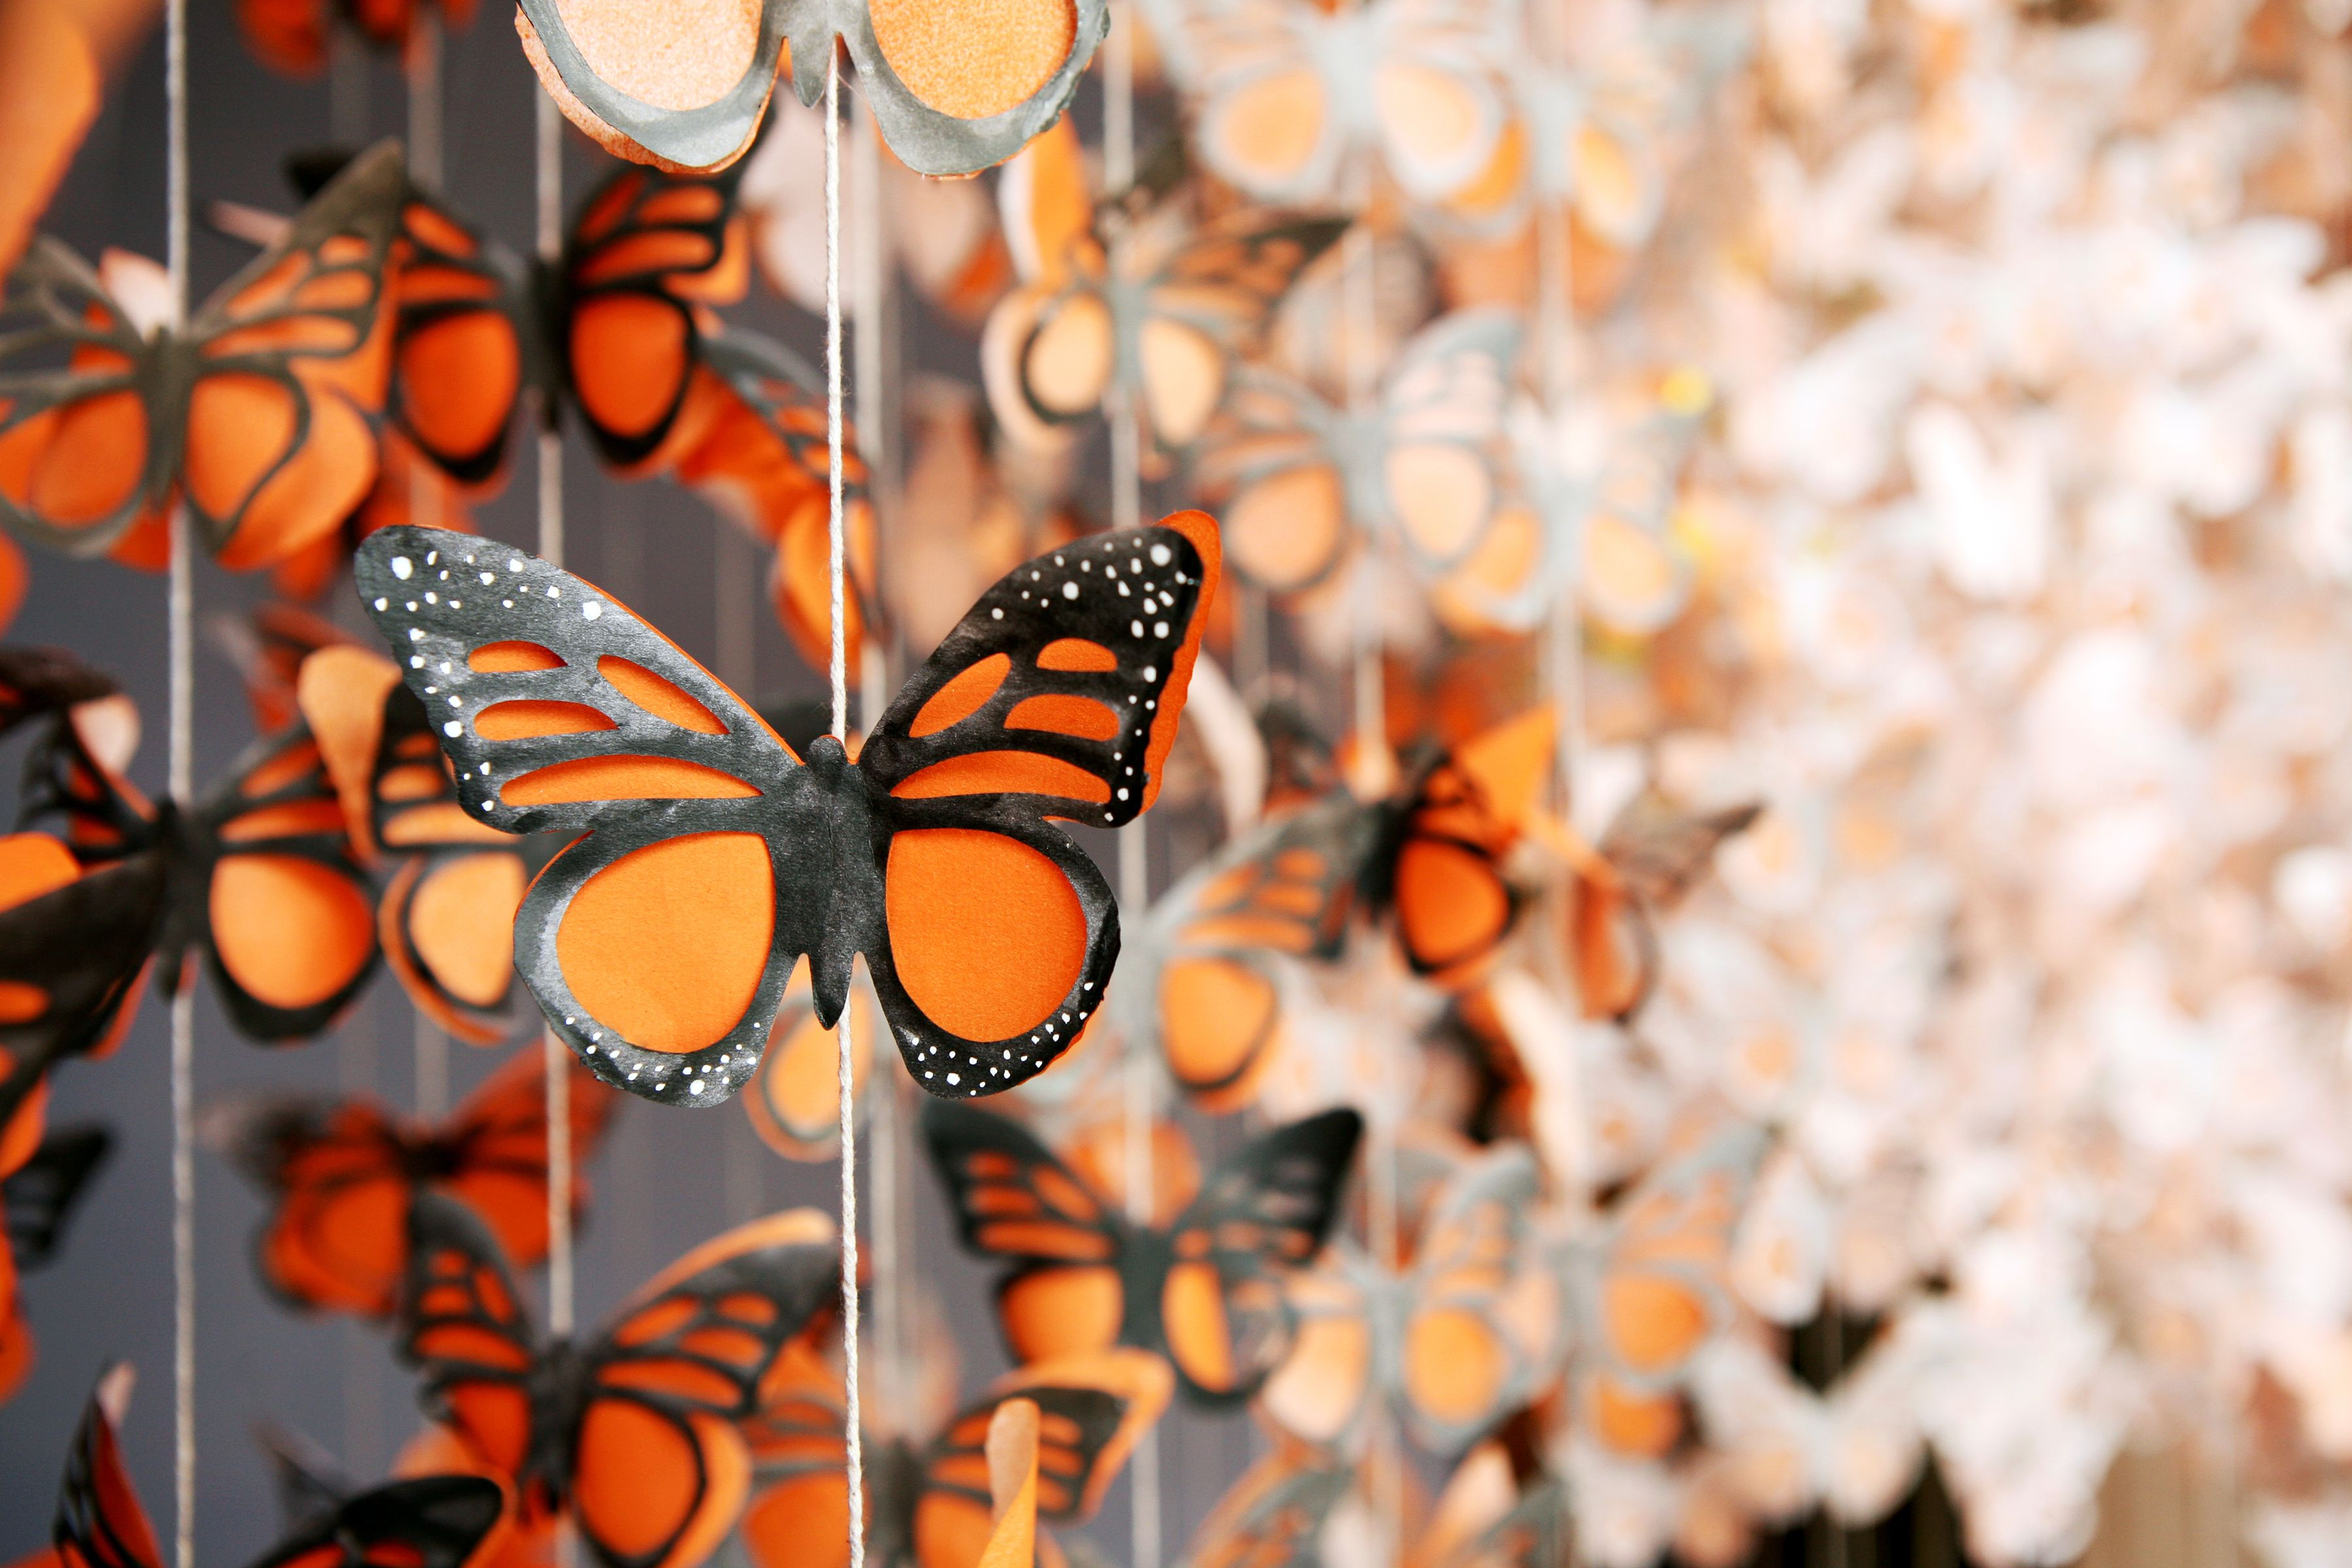 Butterfly Garland With Images Butterfly Garland Butterfly Art Monarch Butterfly